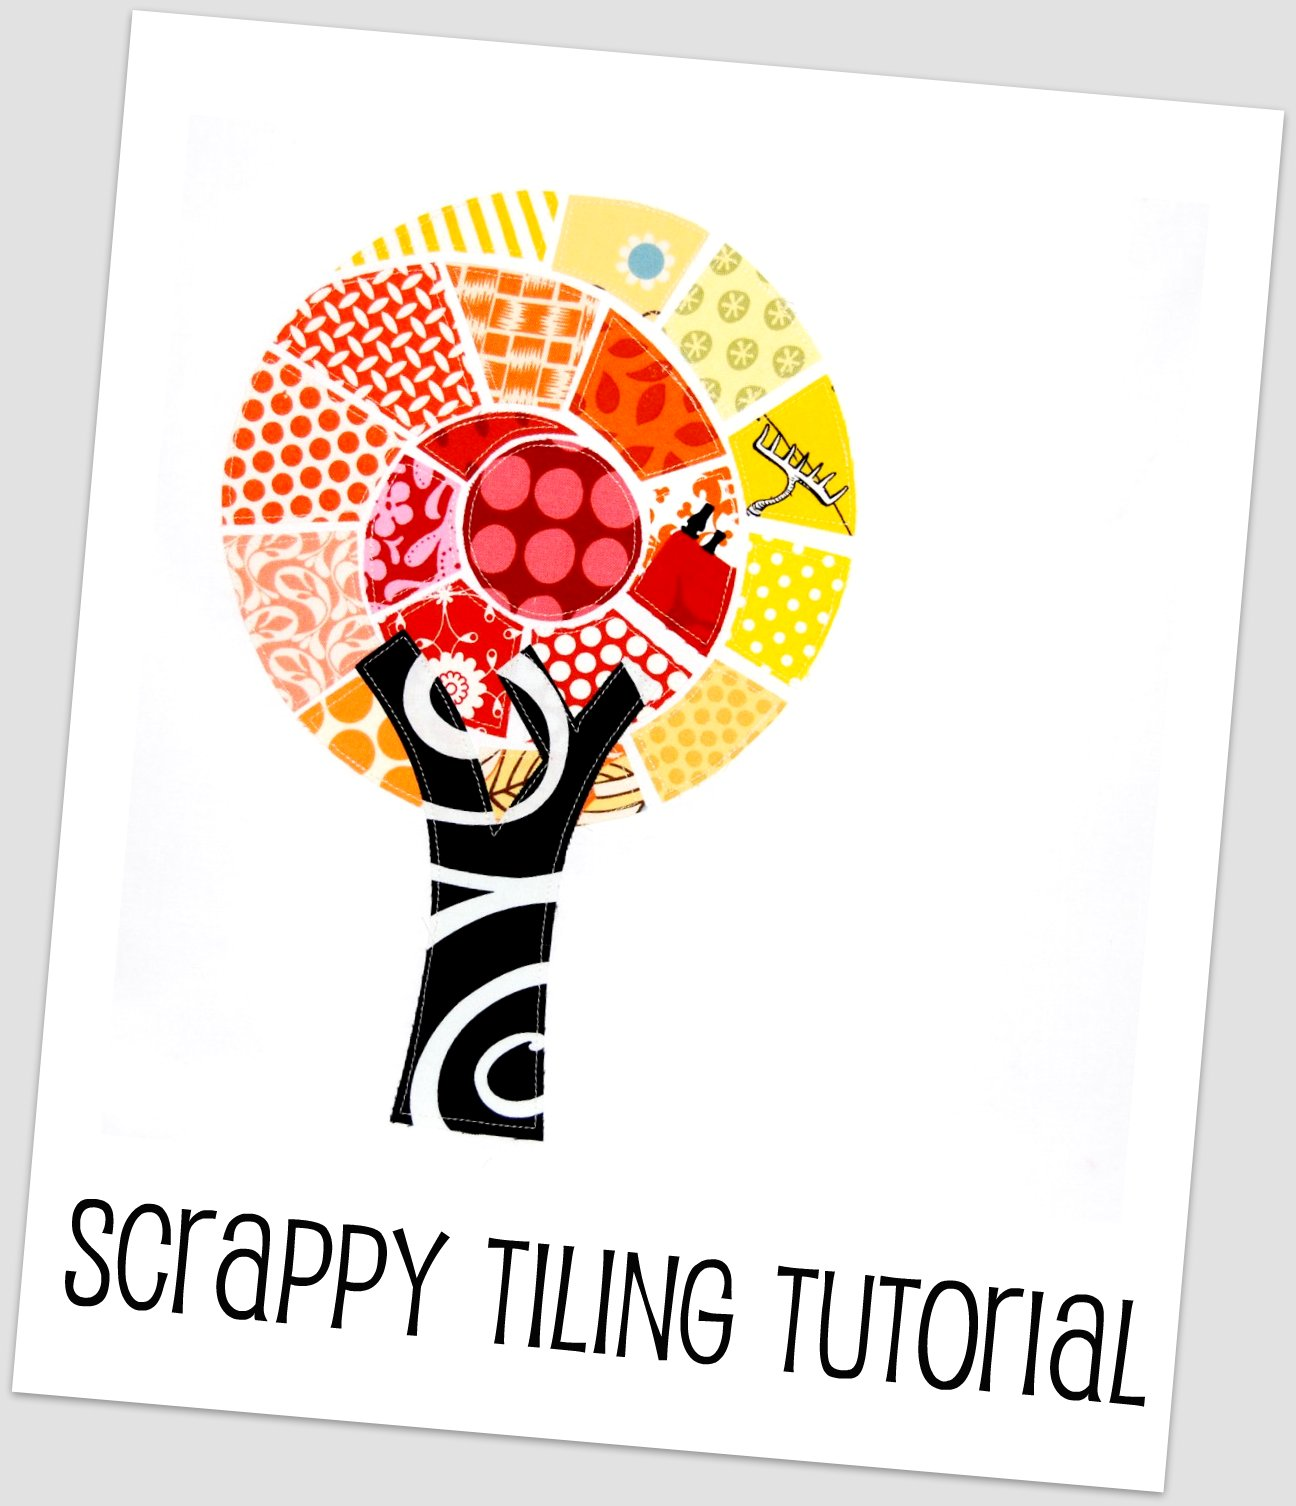 Scrappy Tiling Tutorial